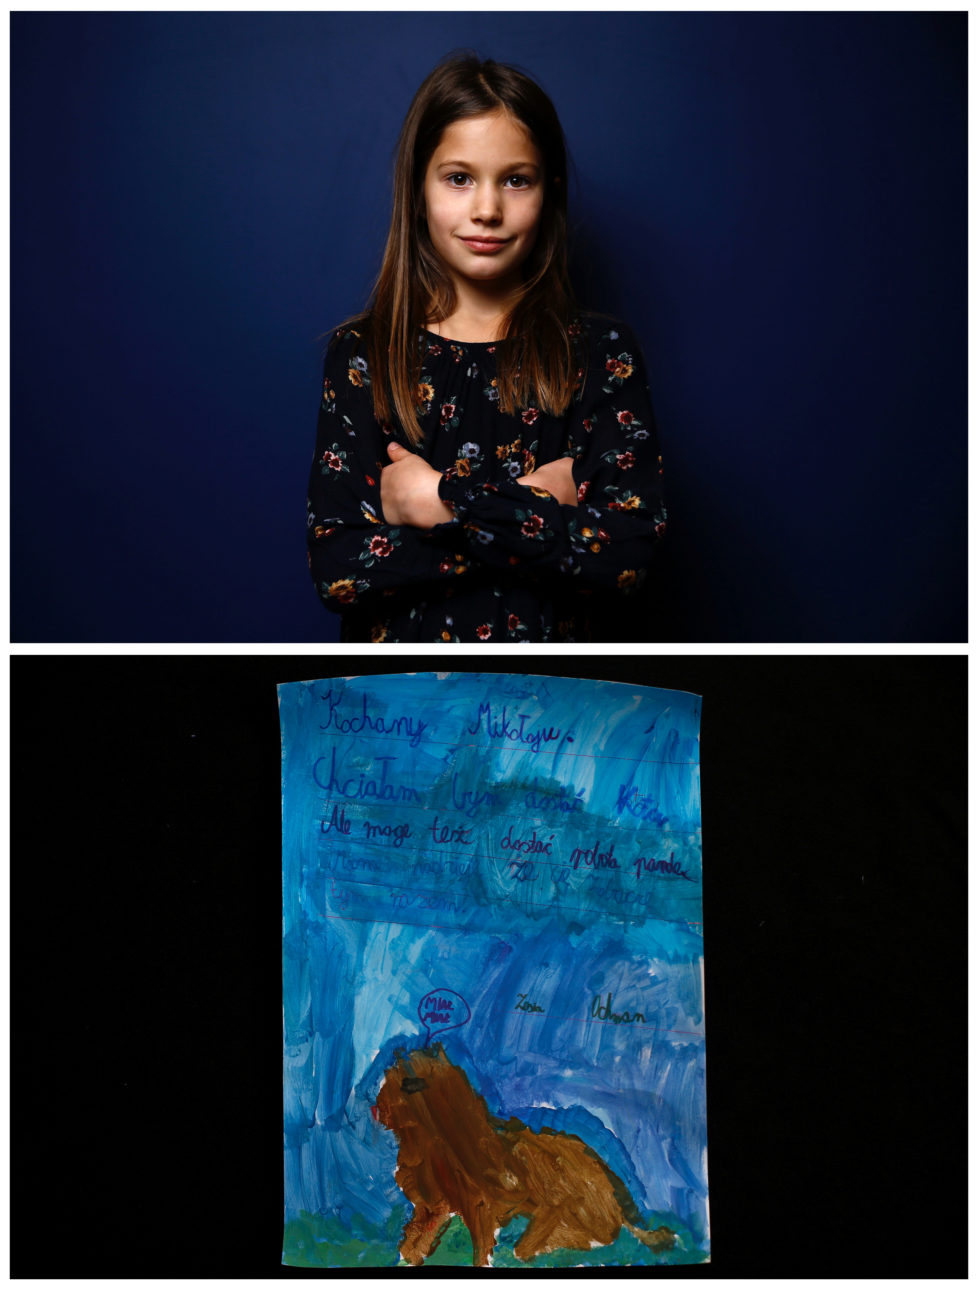 """A combination picture shows Zofia, 8, posing for a photograph November 23, 2016 (top) and her drawing of what she wants to get for Christmas from Santa, in Warsaw, Poland November 24, 2016. """"Dear Santa, I would like to get a cat. But a Robopanda would be ok too. I hope to see you this time. Zosia."""" she wrote. Reuters photographers around the world asked children to draw what they wanted to receive from Santa for Christmas. REUTERS/Kacper Pempel SEARCH """"CHRISTMAS WISHES"""" FOR THIS STORY. SEARCH """"WIDER IMAGE"""" FOR ALL STORIES. TPX IMAGES OF THE DAY. - RTSV37I"""